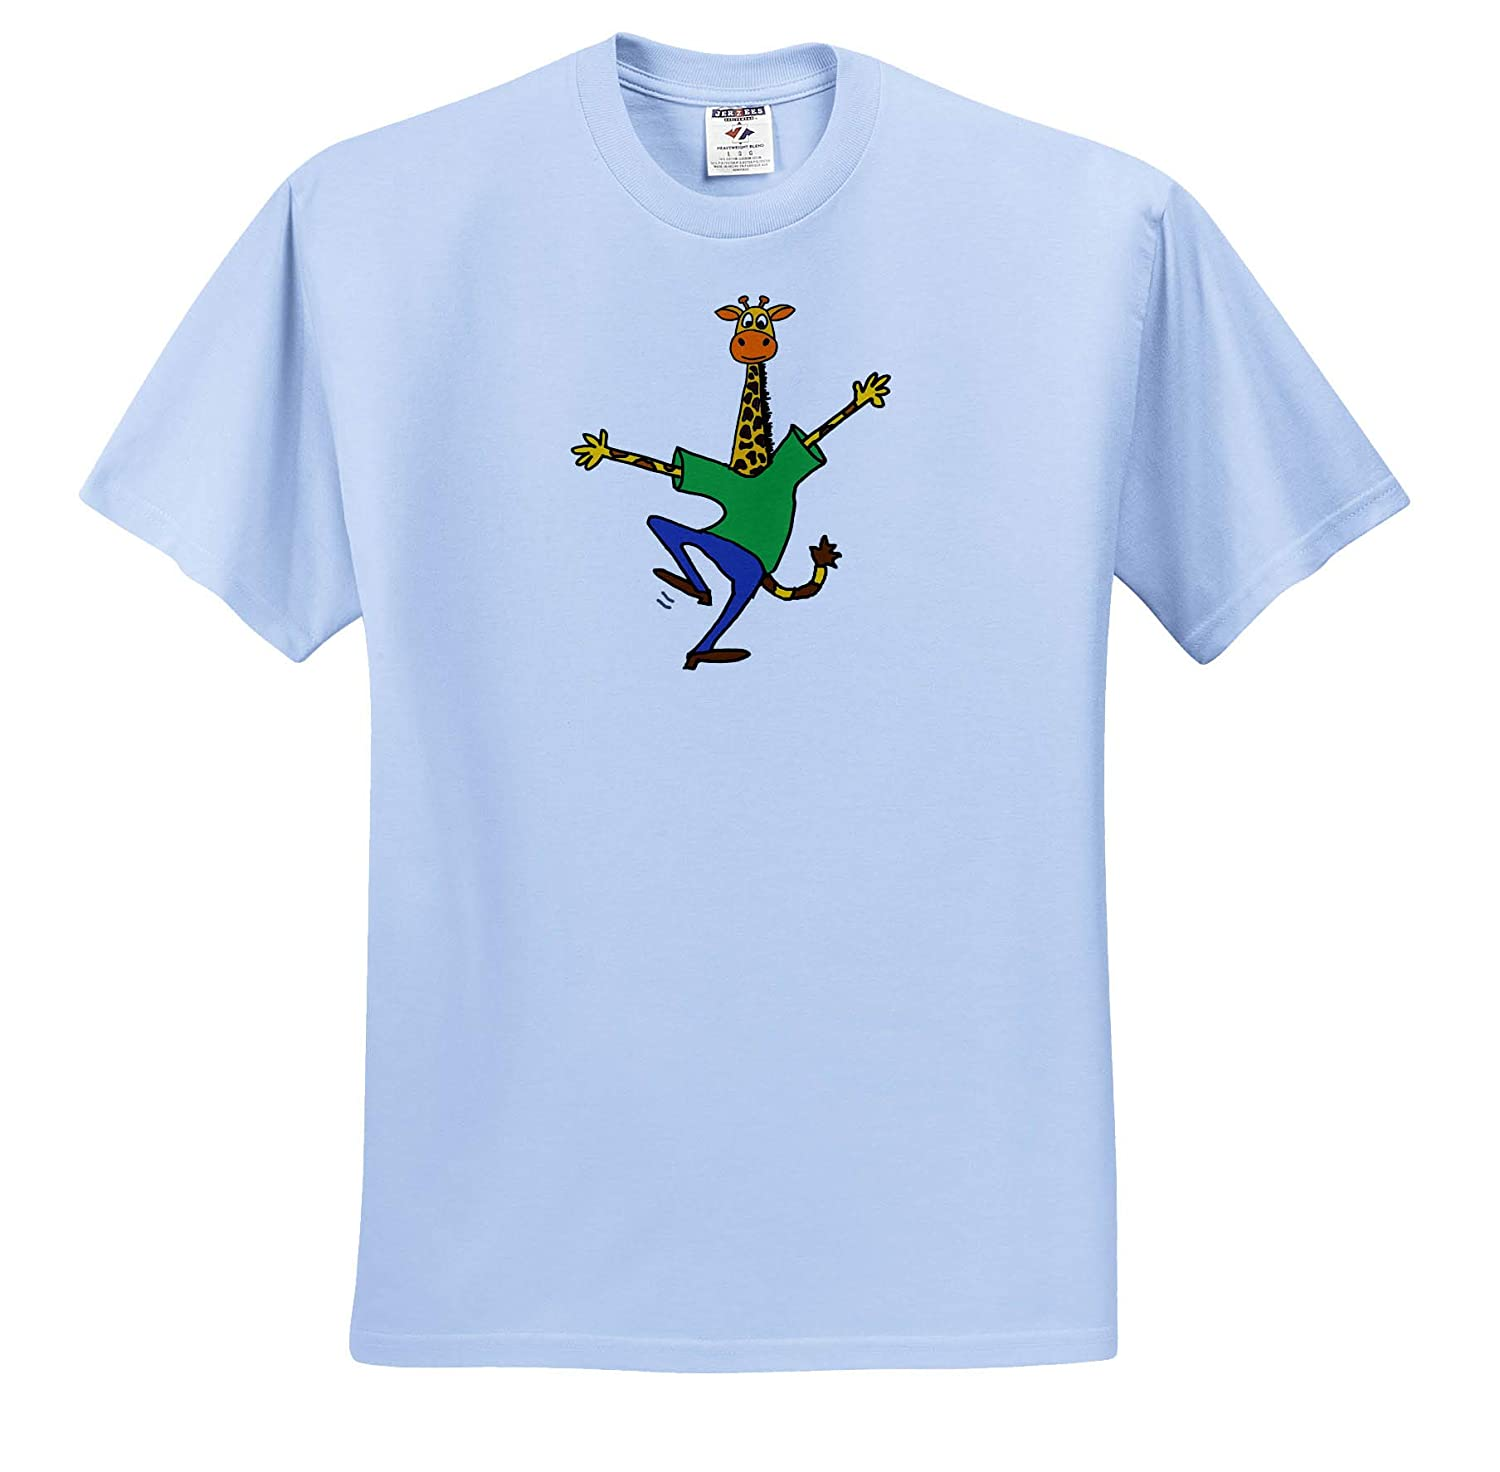 Funny Cute Happy Giraffe Dancing Cartoon 3dRose All Smiles Art Funny Adult T-Shirt XL ts/_319325